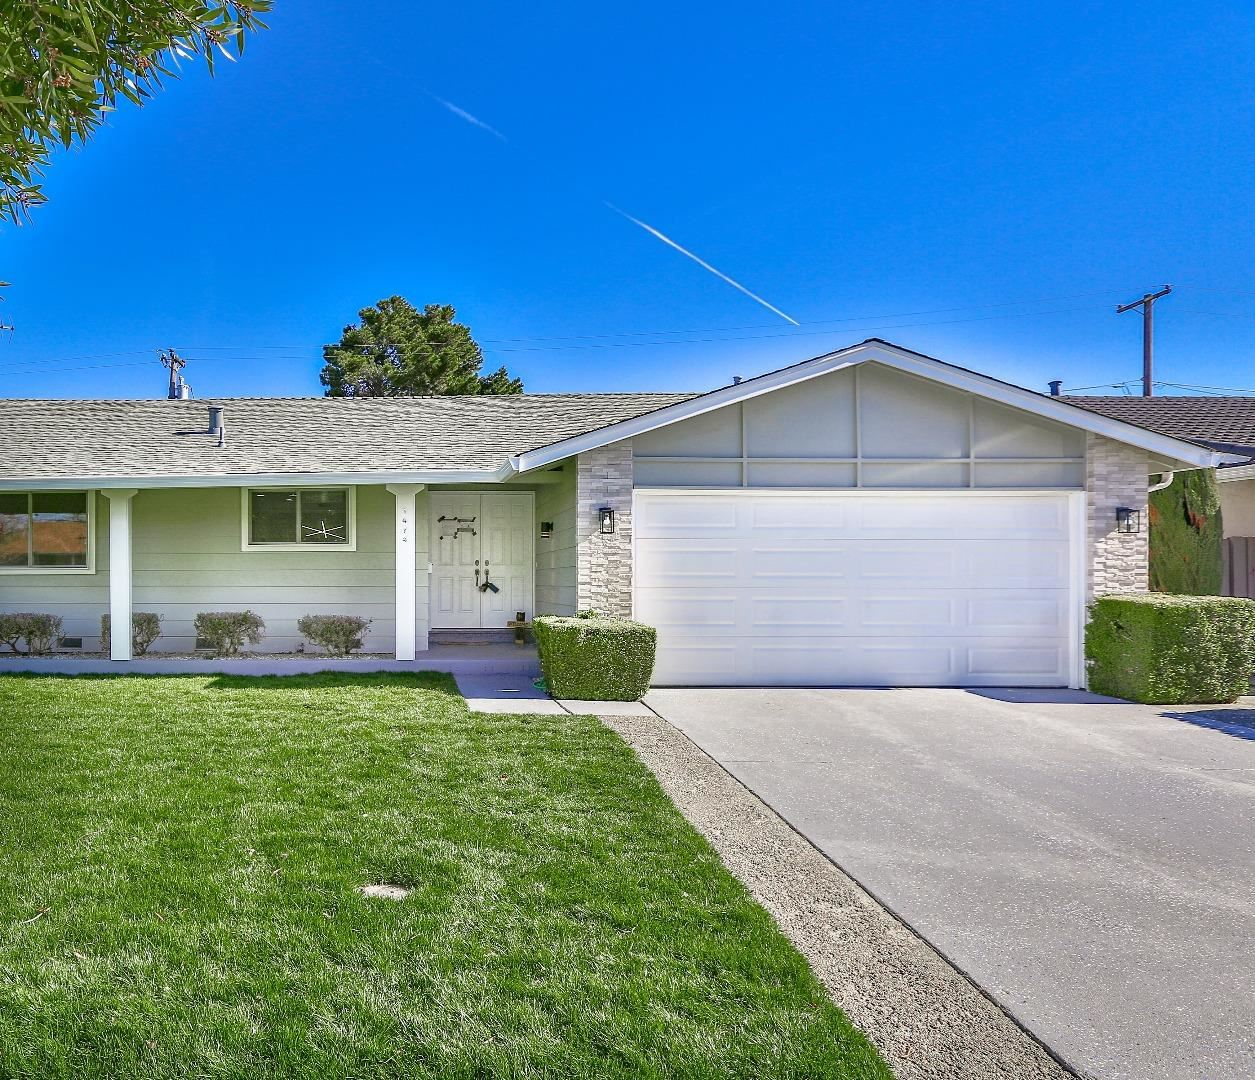 Photo for 1474 Jamestown DR, CUPERTINO, CA 95014 (MLS # ML81828768)